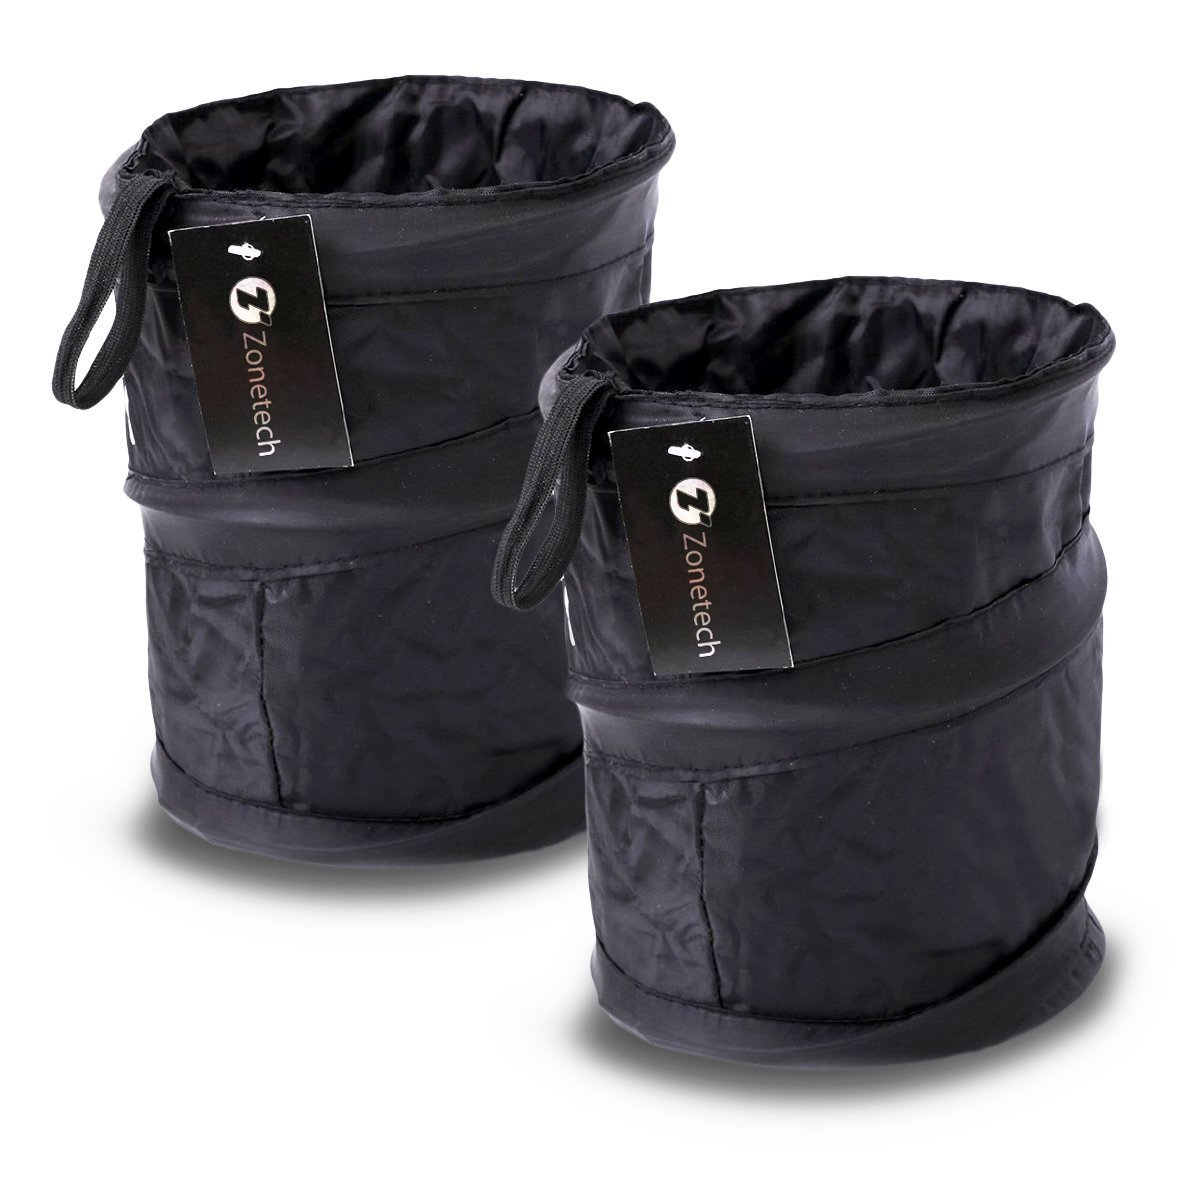 Zone Tech 2-Pack Universal Traveling Portable Car Trash Can - Black Collapsible Pop-up Leak Proof Trash Can